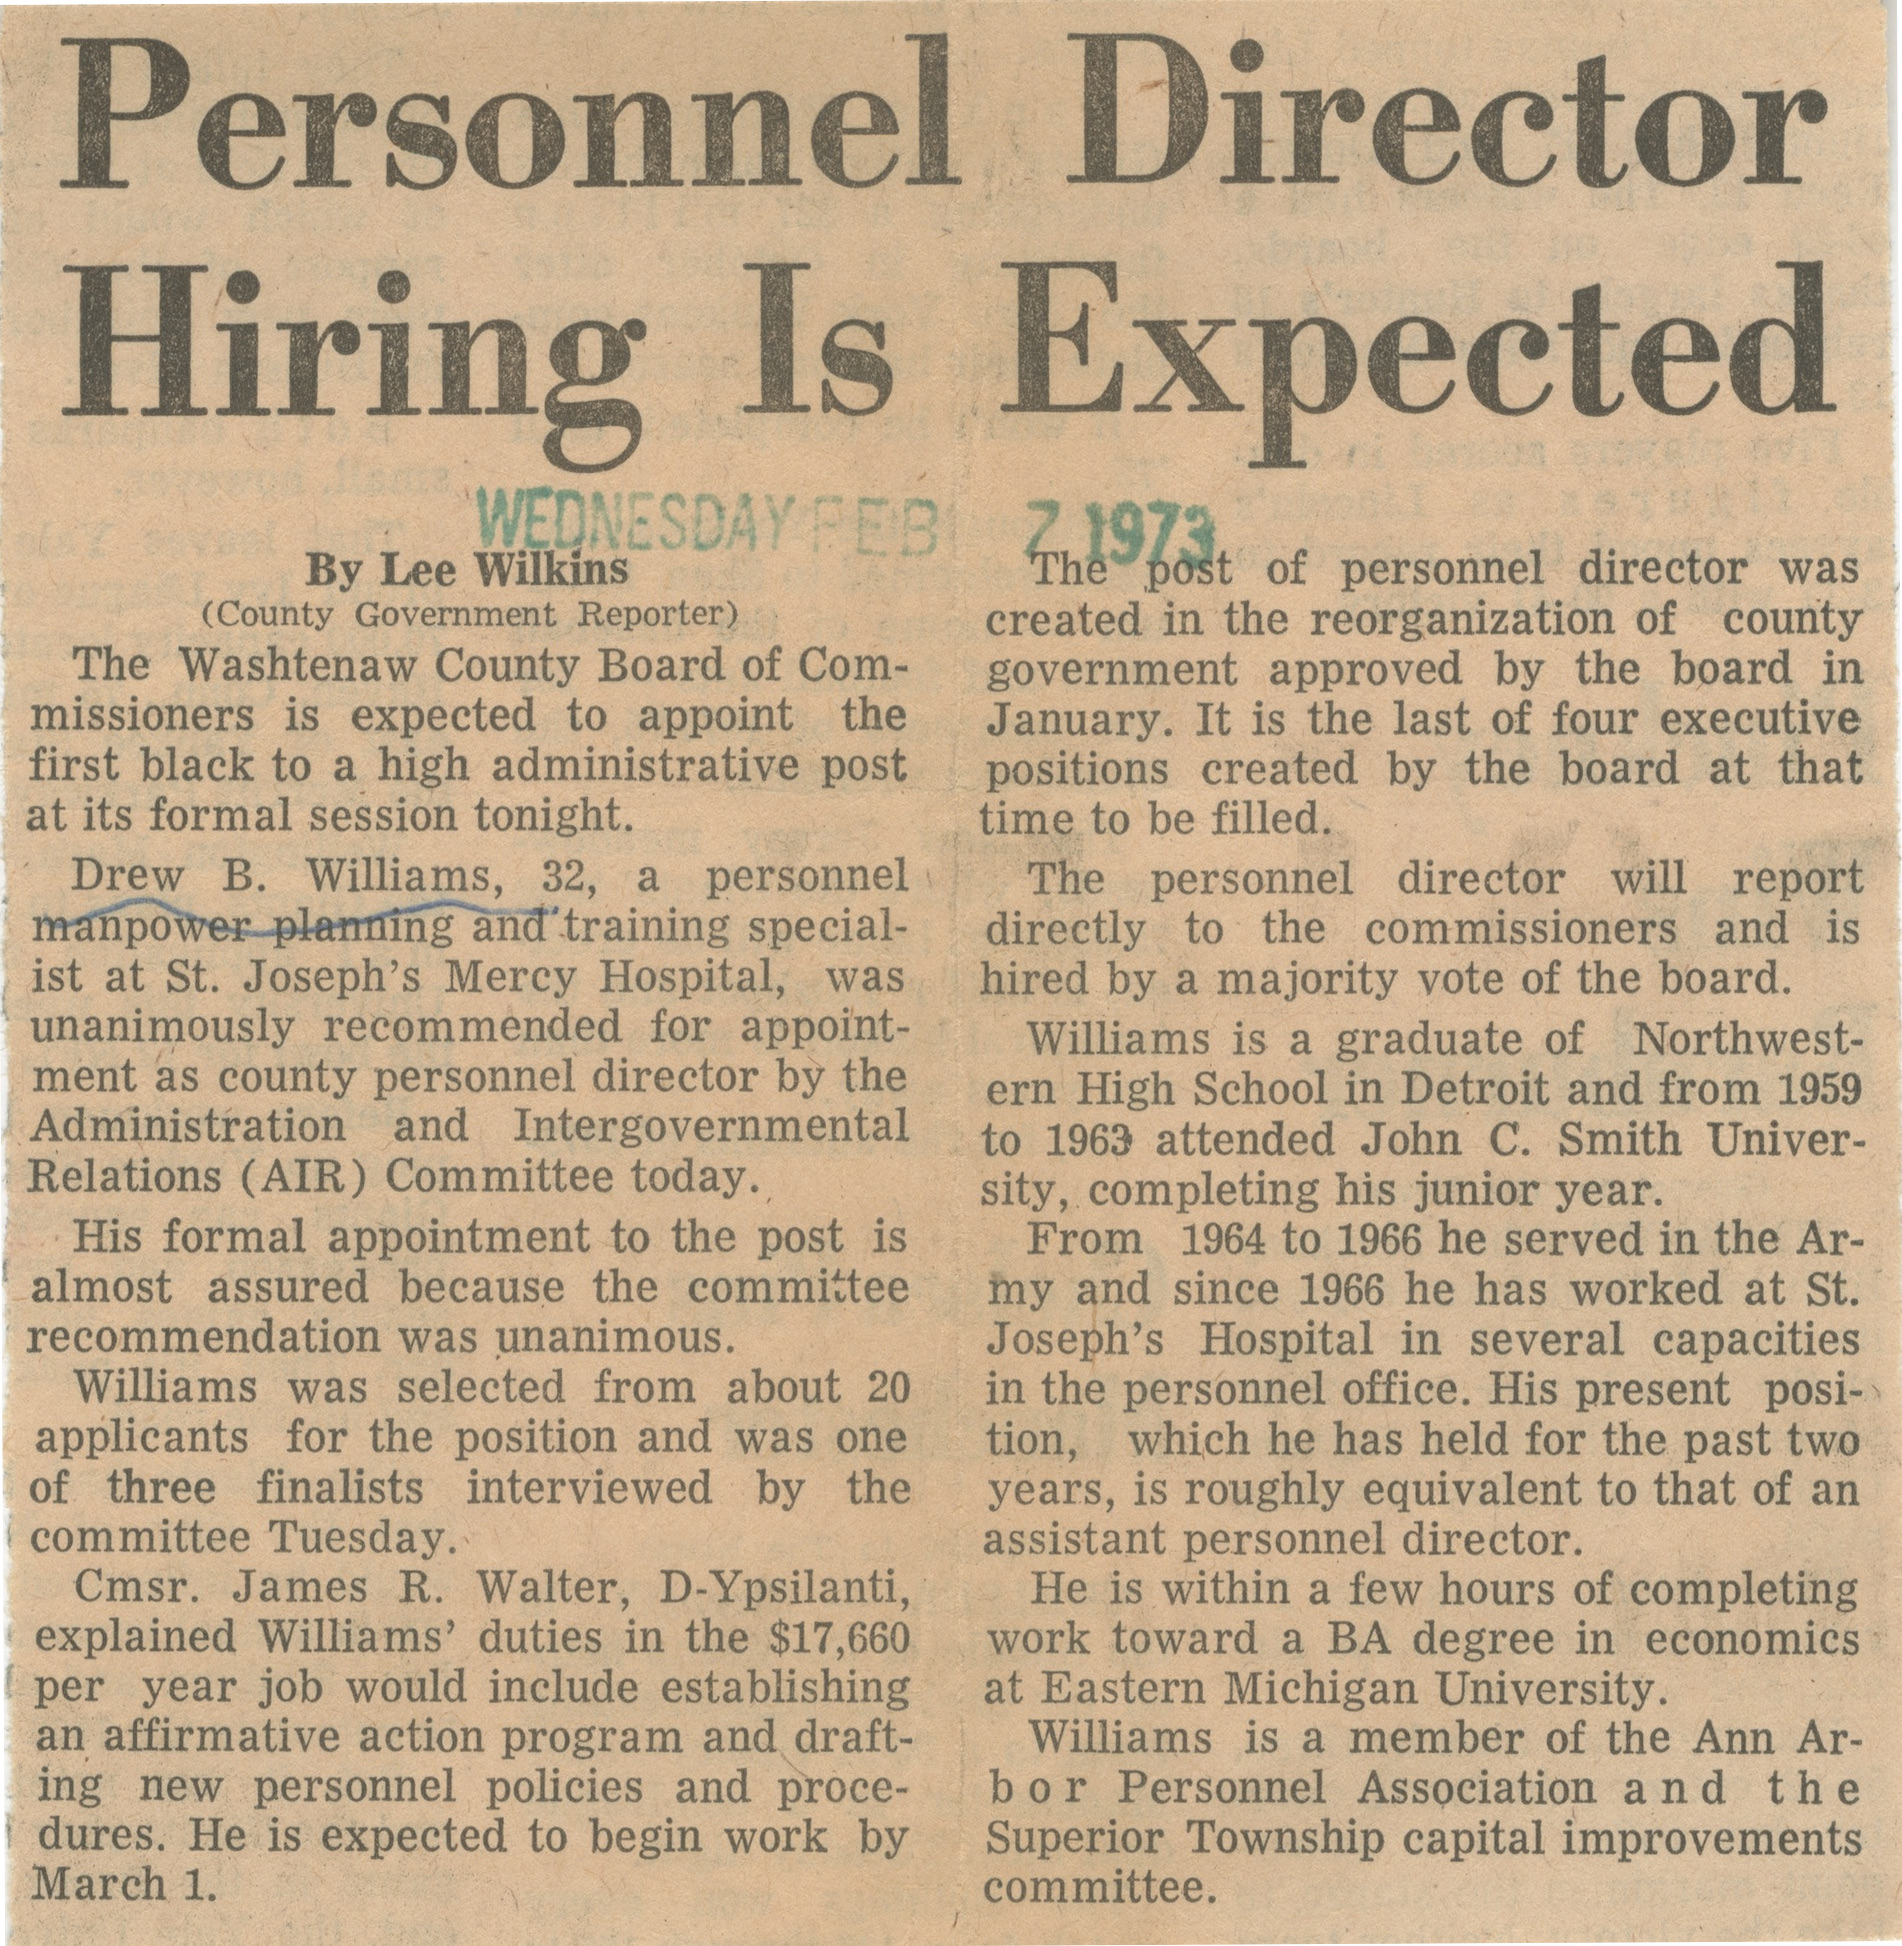 Personnel Director Hiring Is Expected image